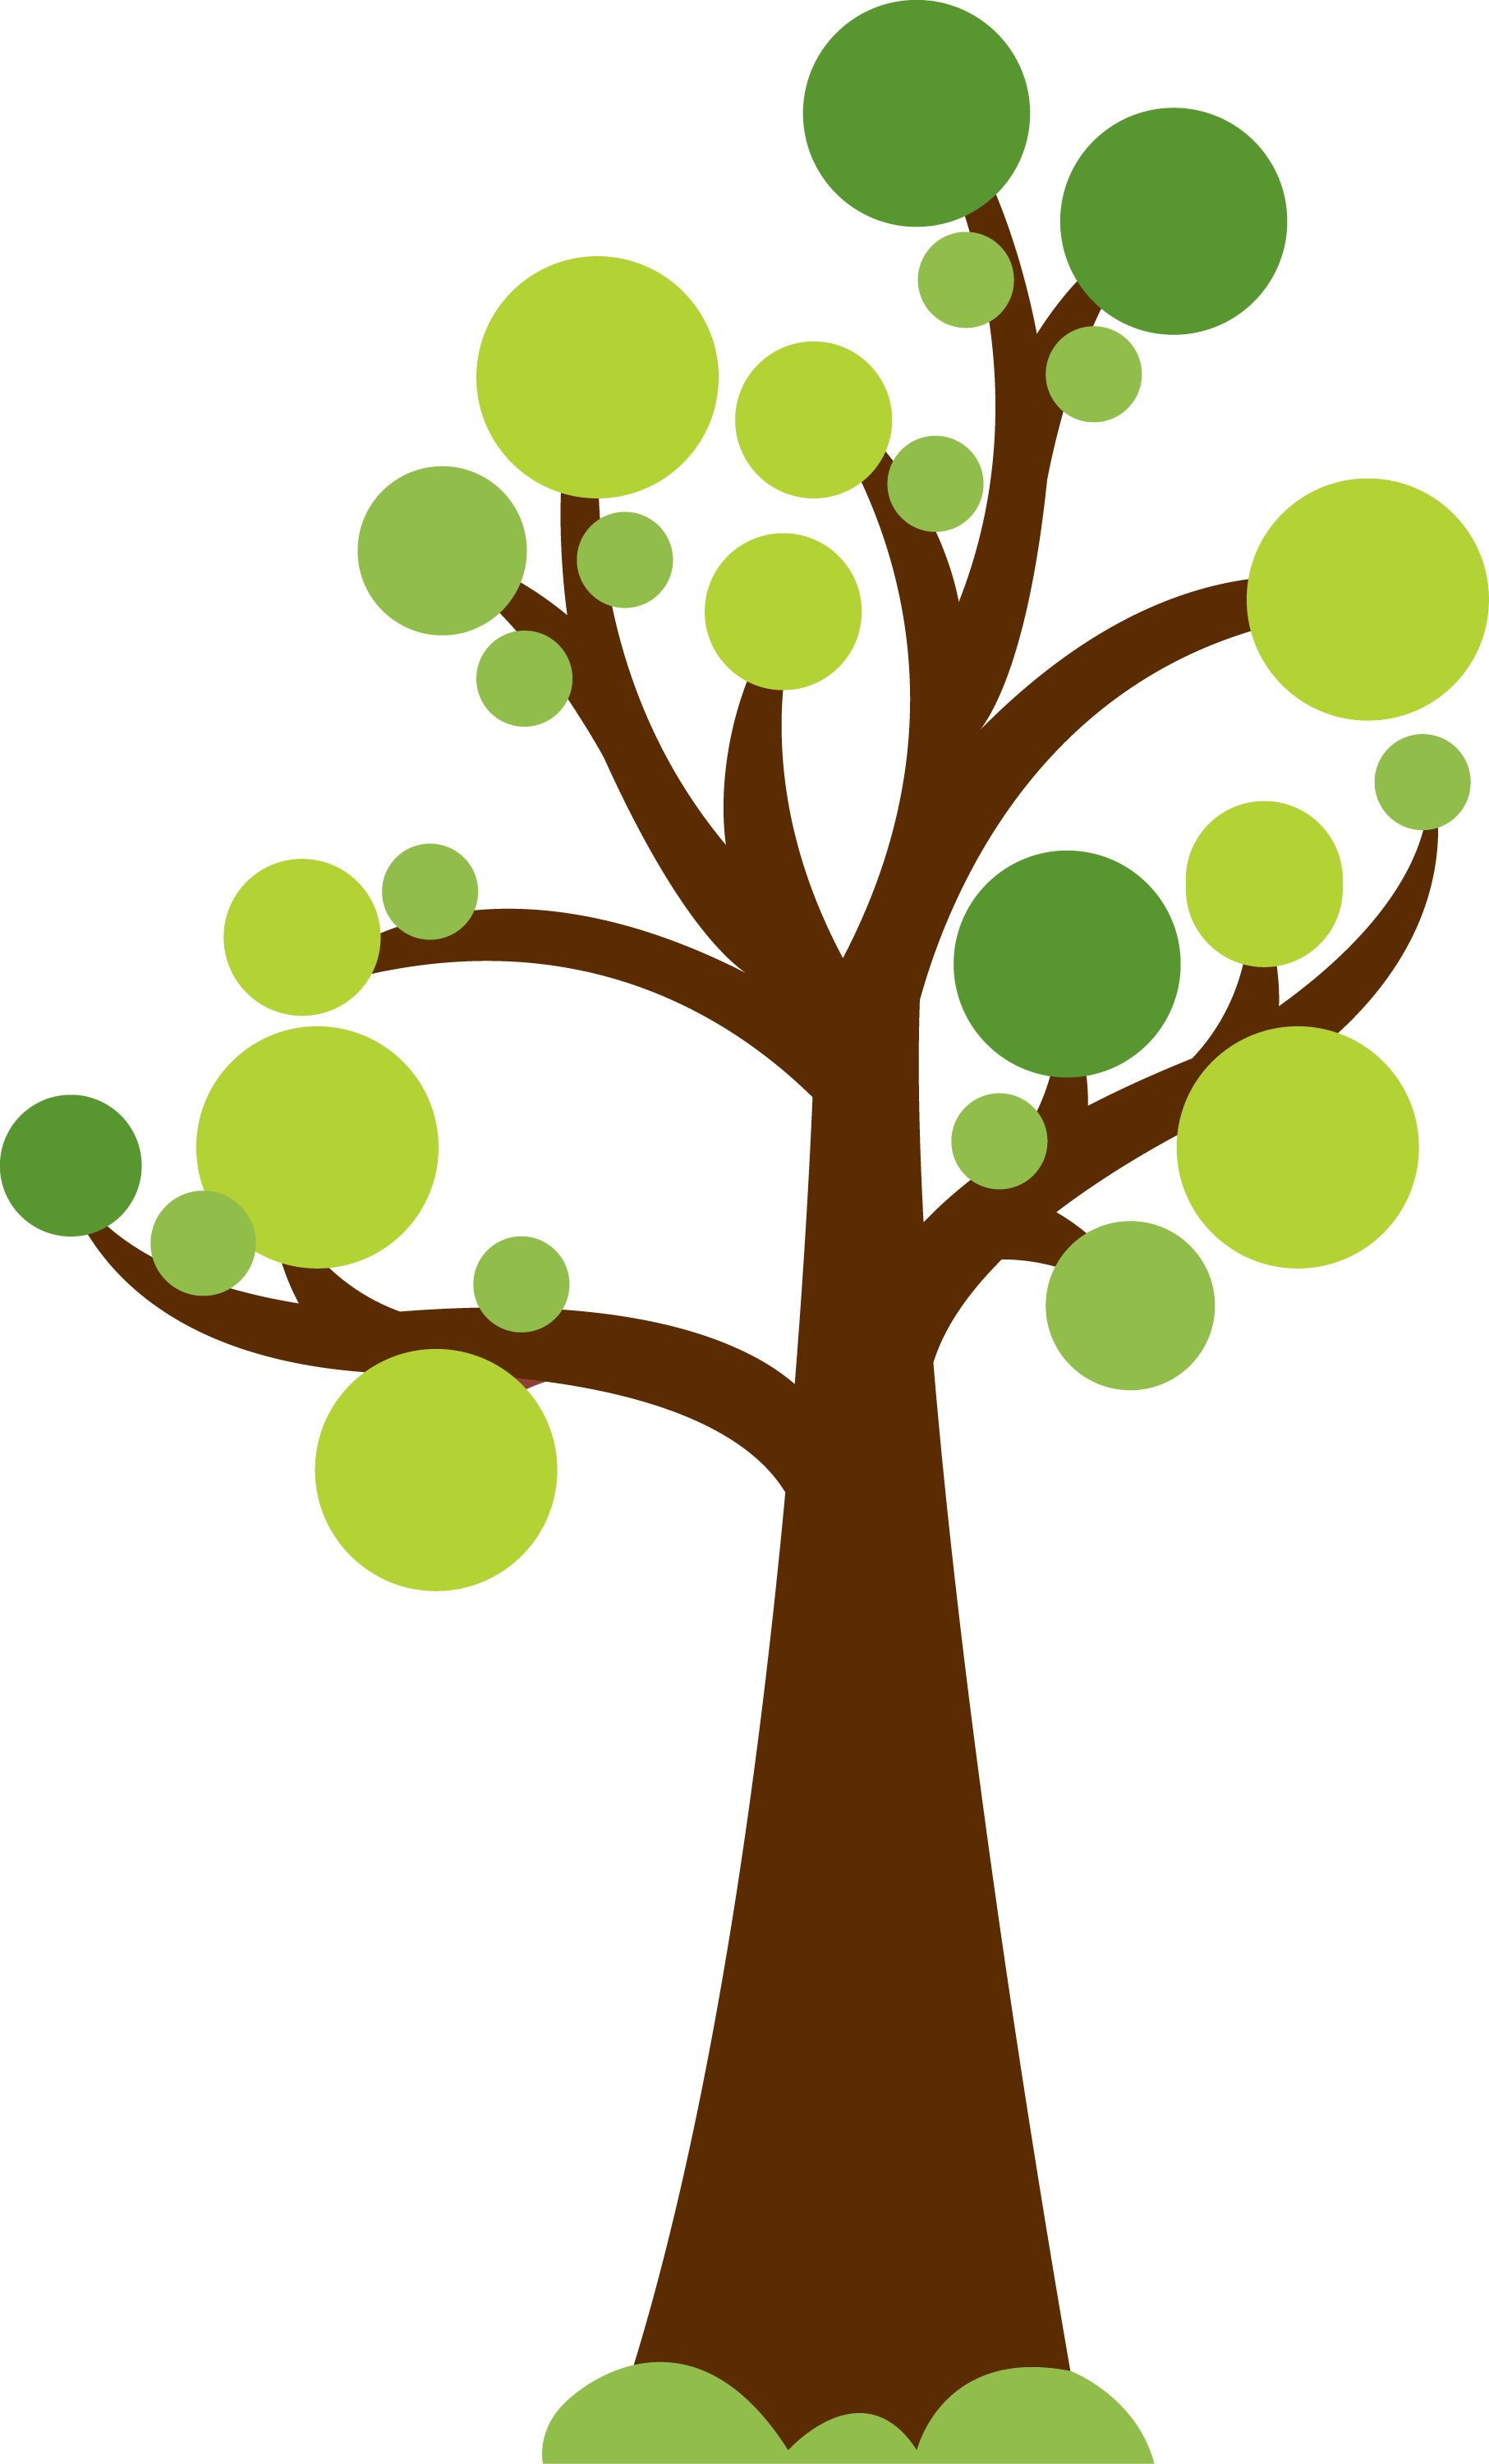 clipart images tree